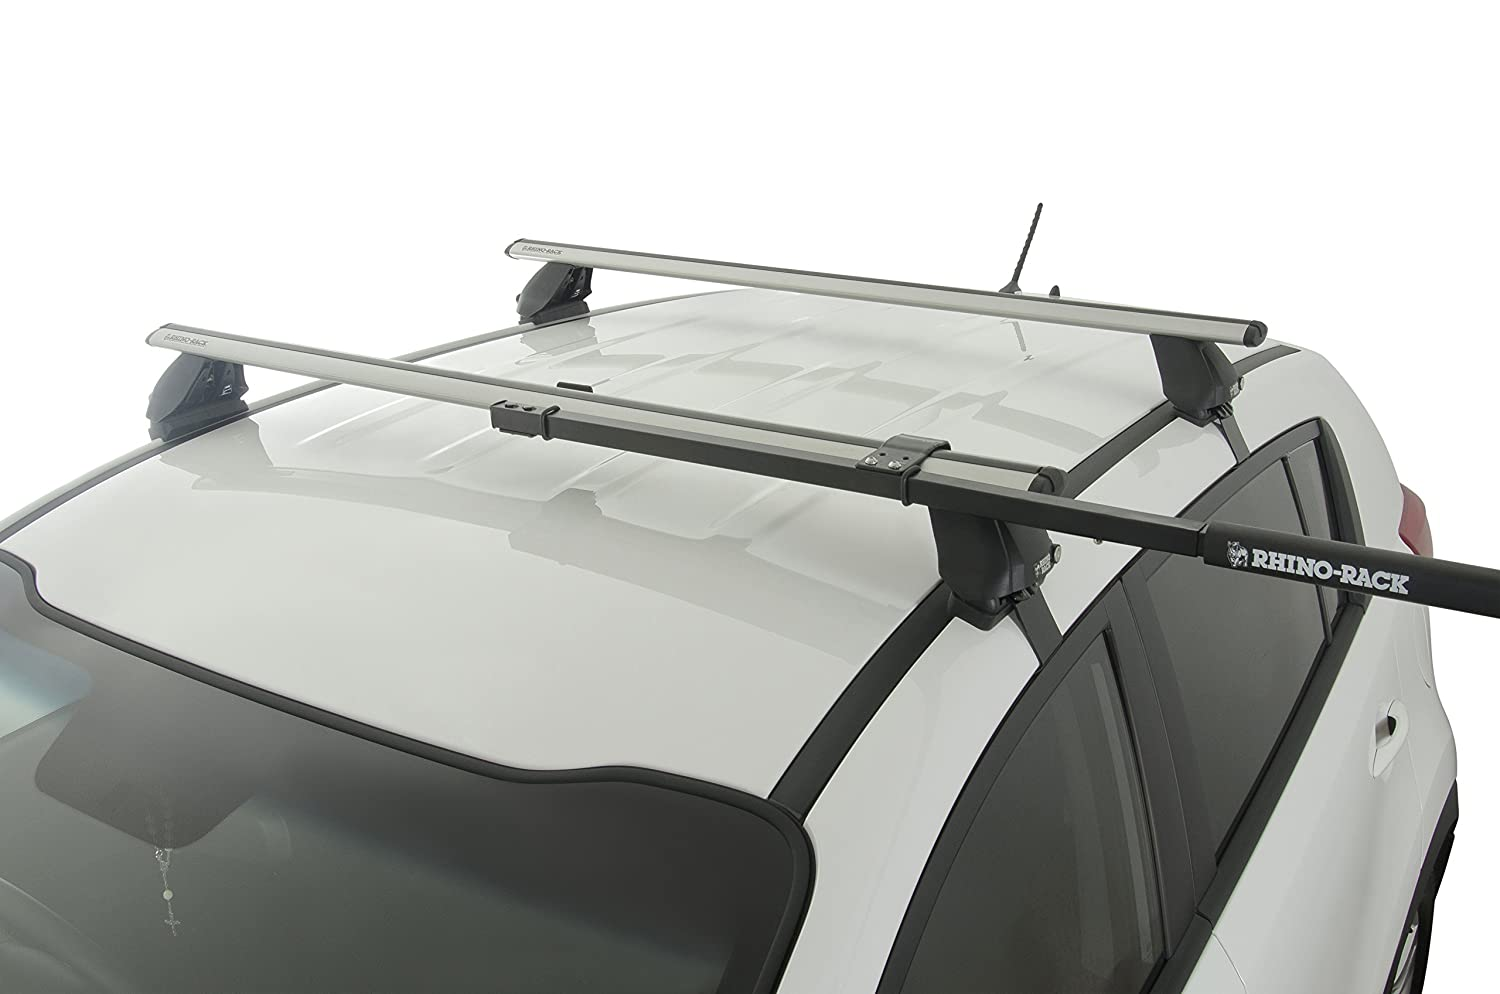 Amazon.com : Rhino Rack Universal Side Loader Rack For Kayaks/Canoes :  Automotive Kayak Racks : Sports U0026 Outdoors